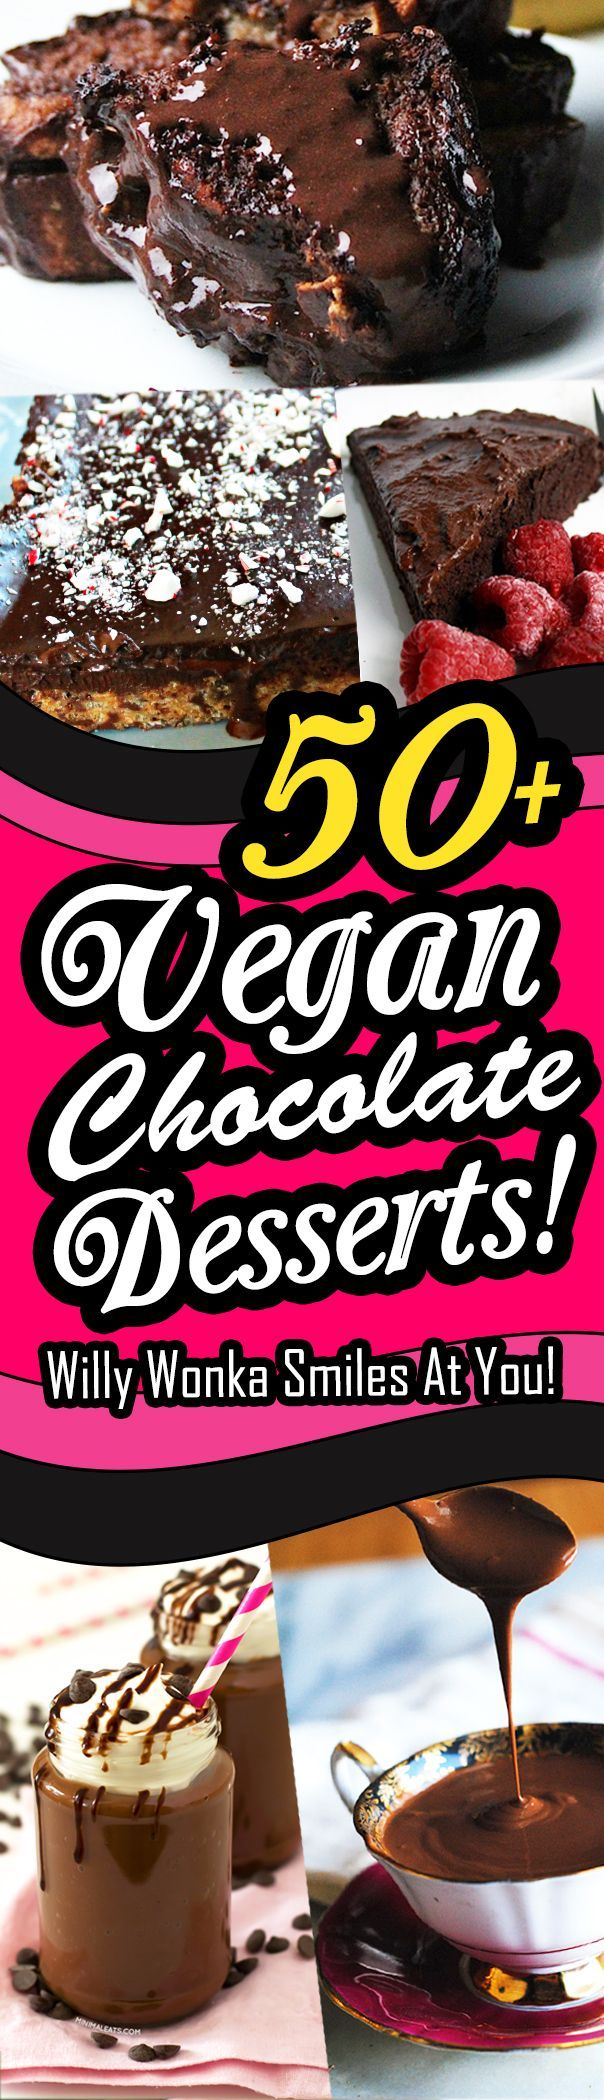 50+ of the Best Vegan Chocolate Desserts... Ever! Includes chocolate recipes for cakes, mousses, bars, puddings, muffins, and more.